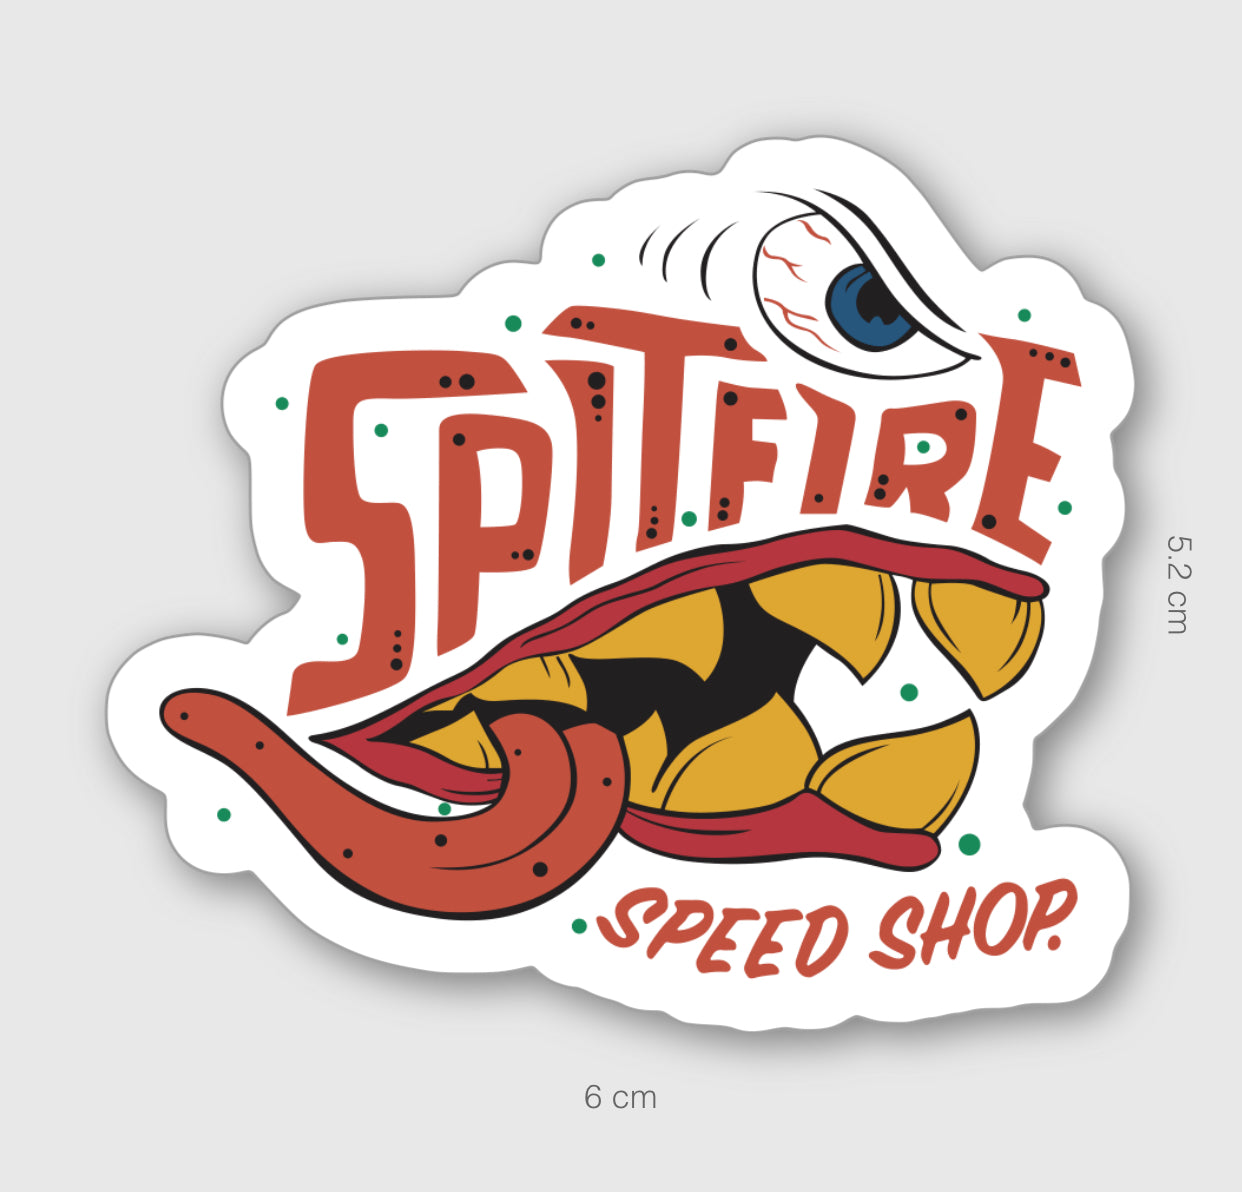 Spitfire Cartoon Sticker Small